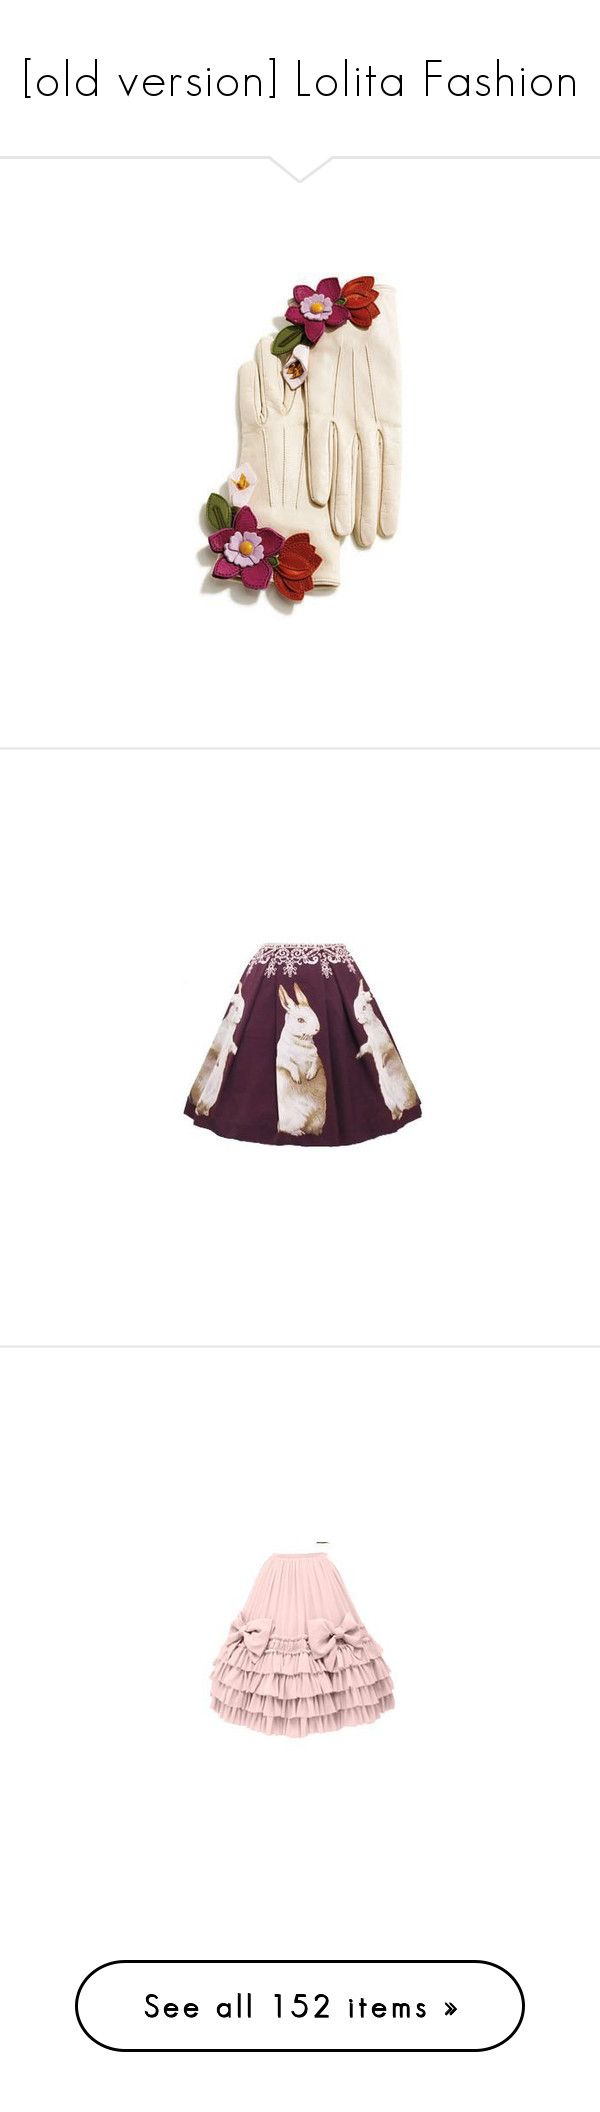 """""""[old version] Lolita Fashion"""" by mezzo-hauptperson ❤ liked on Polyvore featuring accessories, gloves, cream leather gloves, leather gloves, cream gloves, real leather gloves, coach gloves, skirts, pin skirt and purple skirt"""